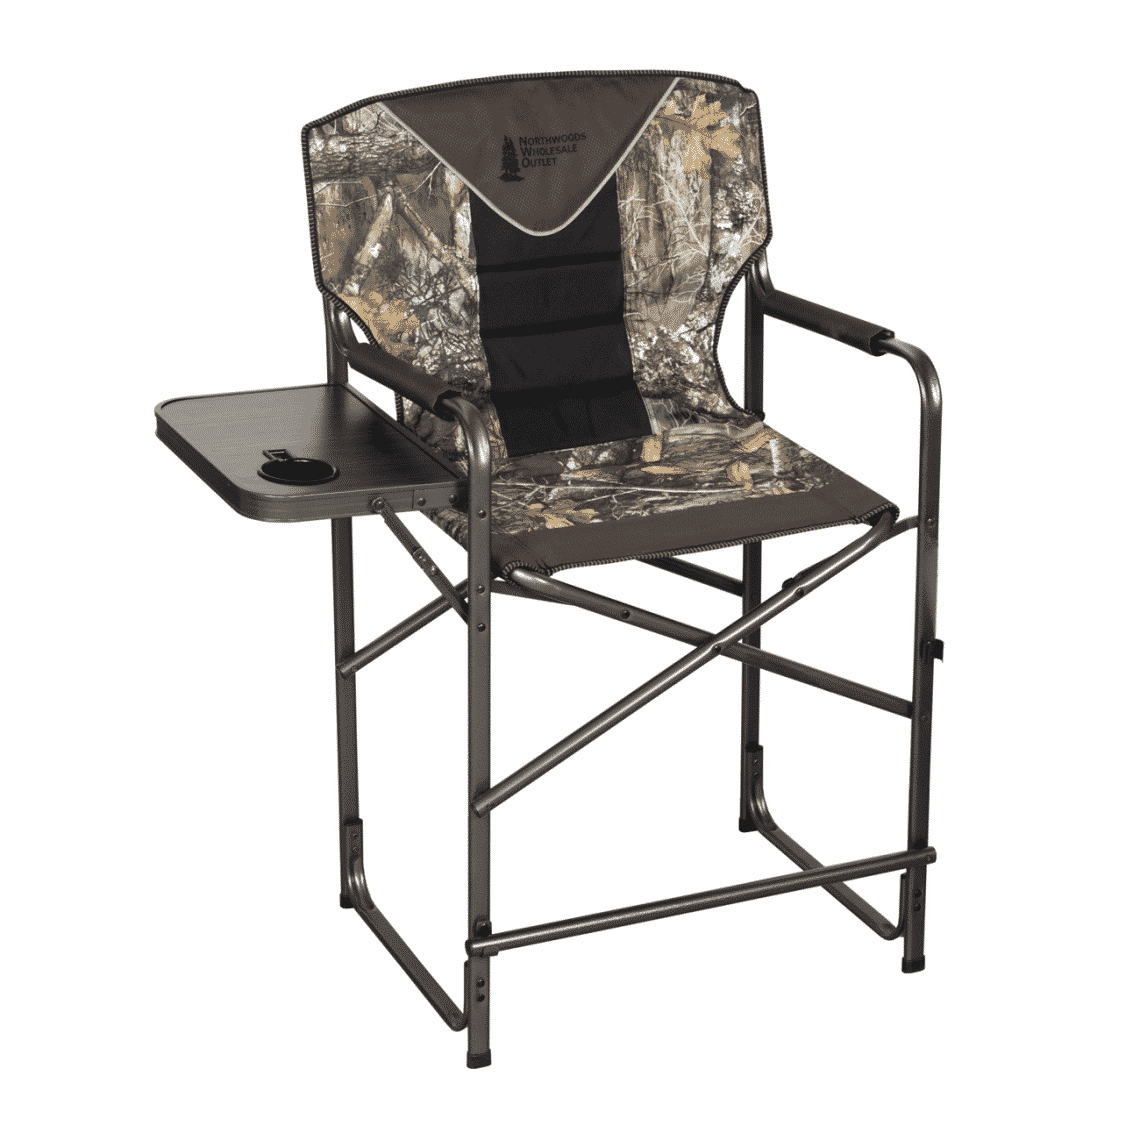 Camo Folding Chair Kings River High View Director 39s Chair Realtree Edge Camo